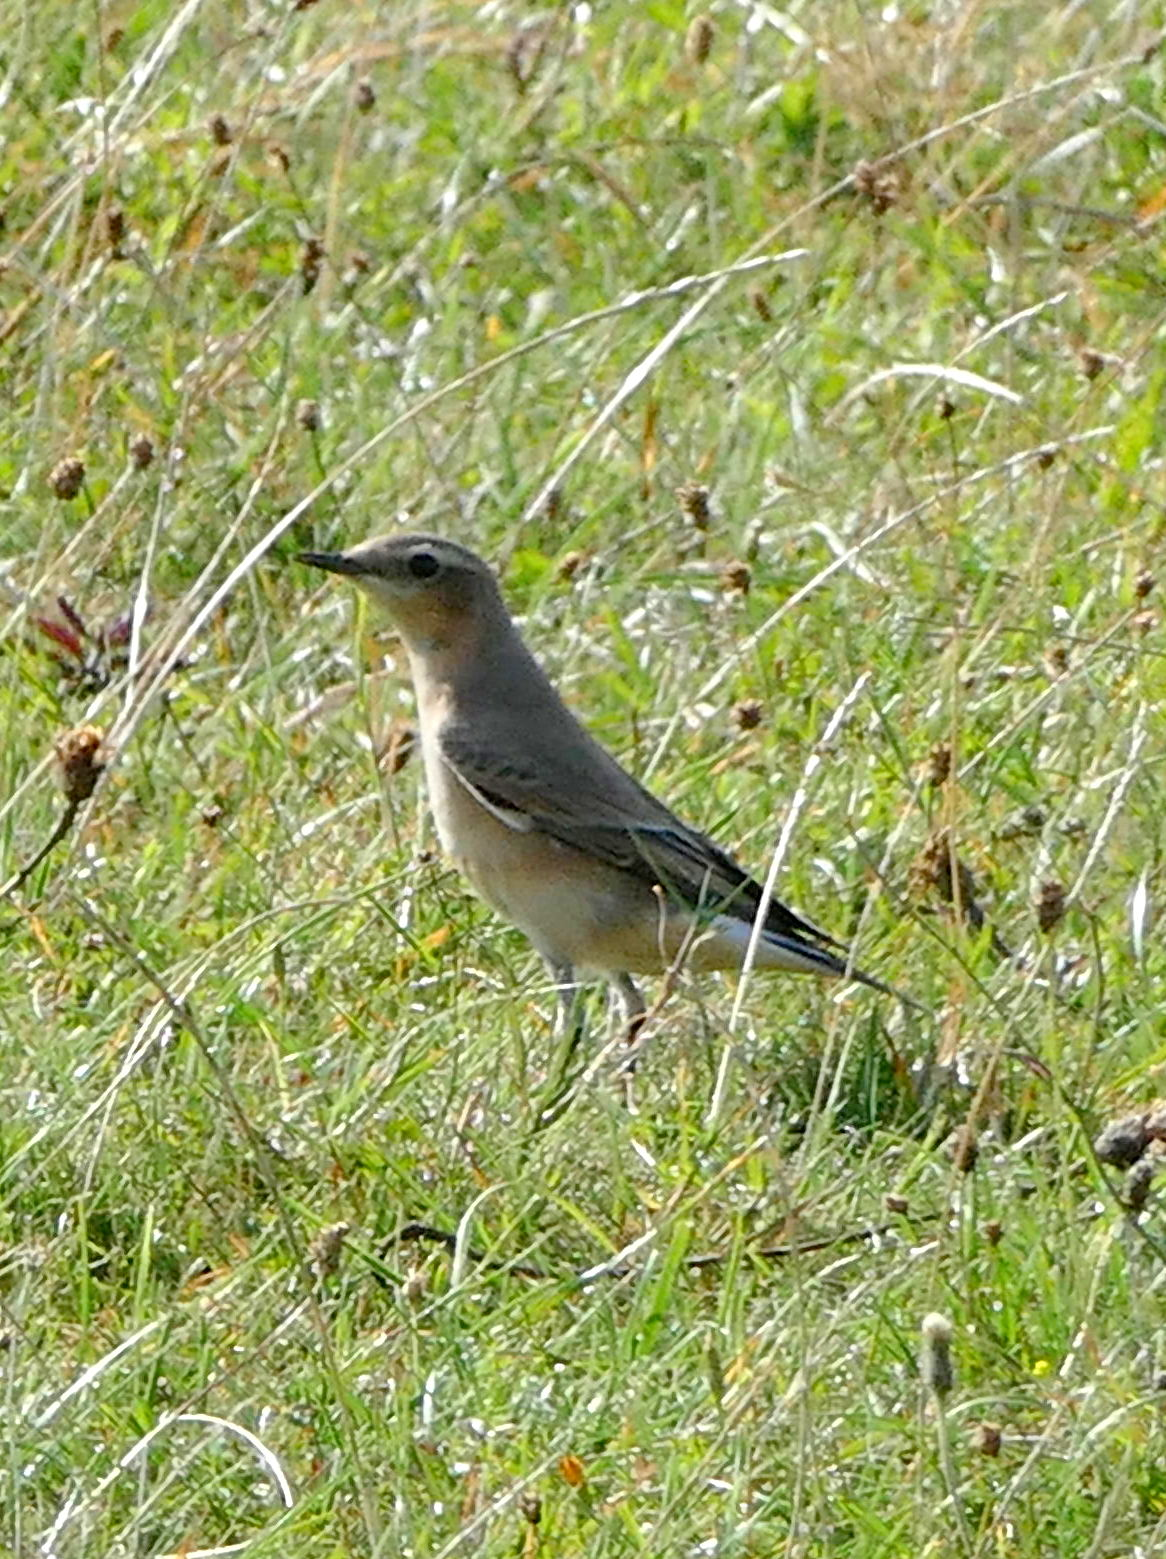 Wheatear migrating via the South Downs of Sussex, UK from the Arctic to Africa